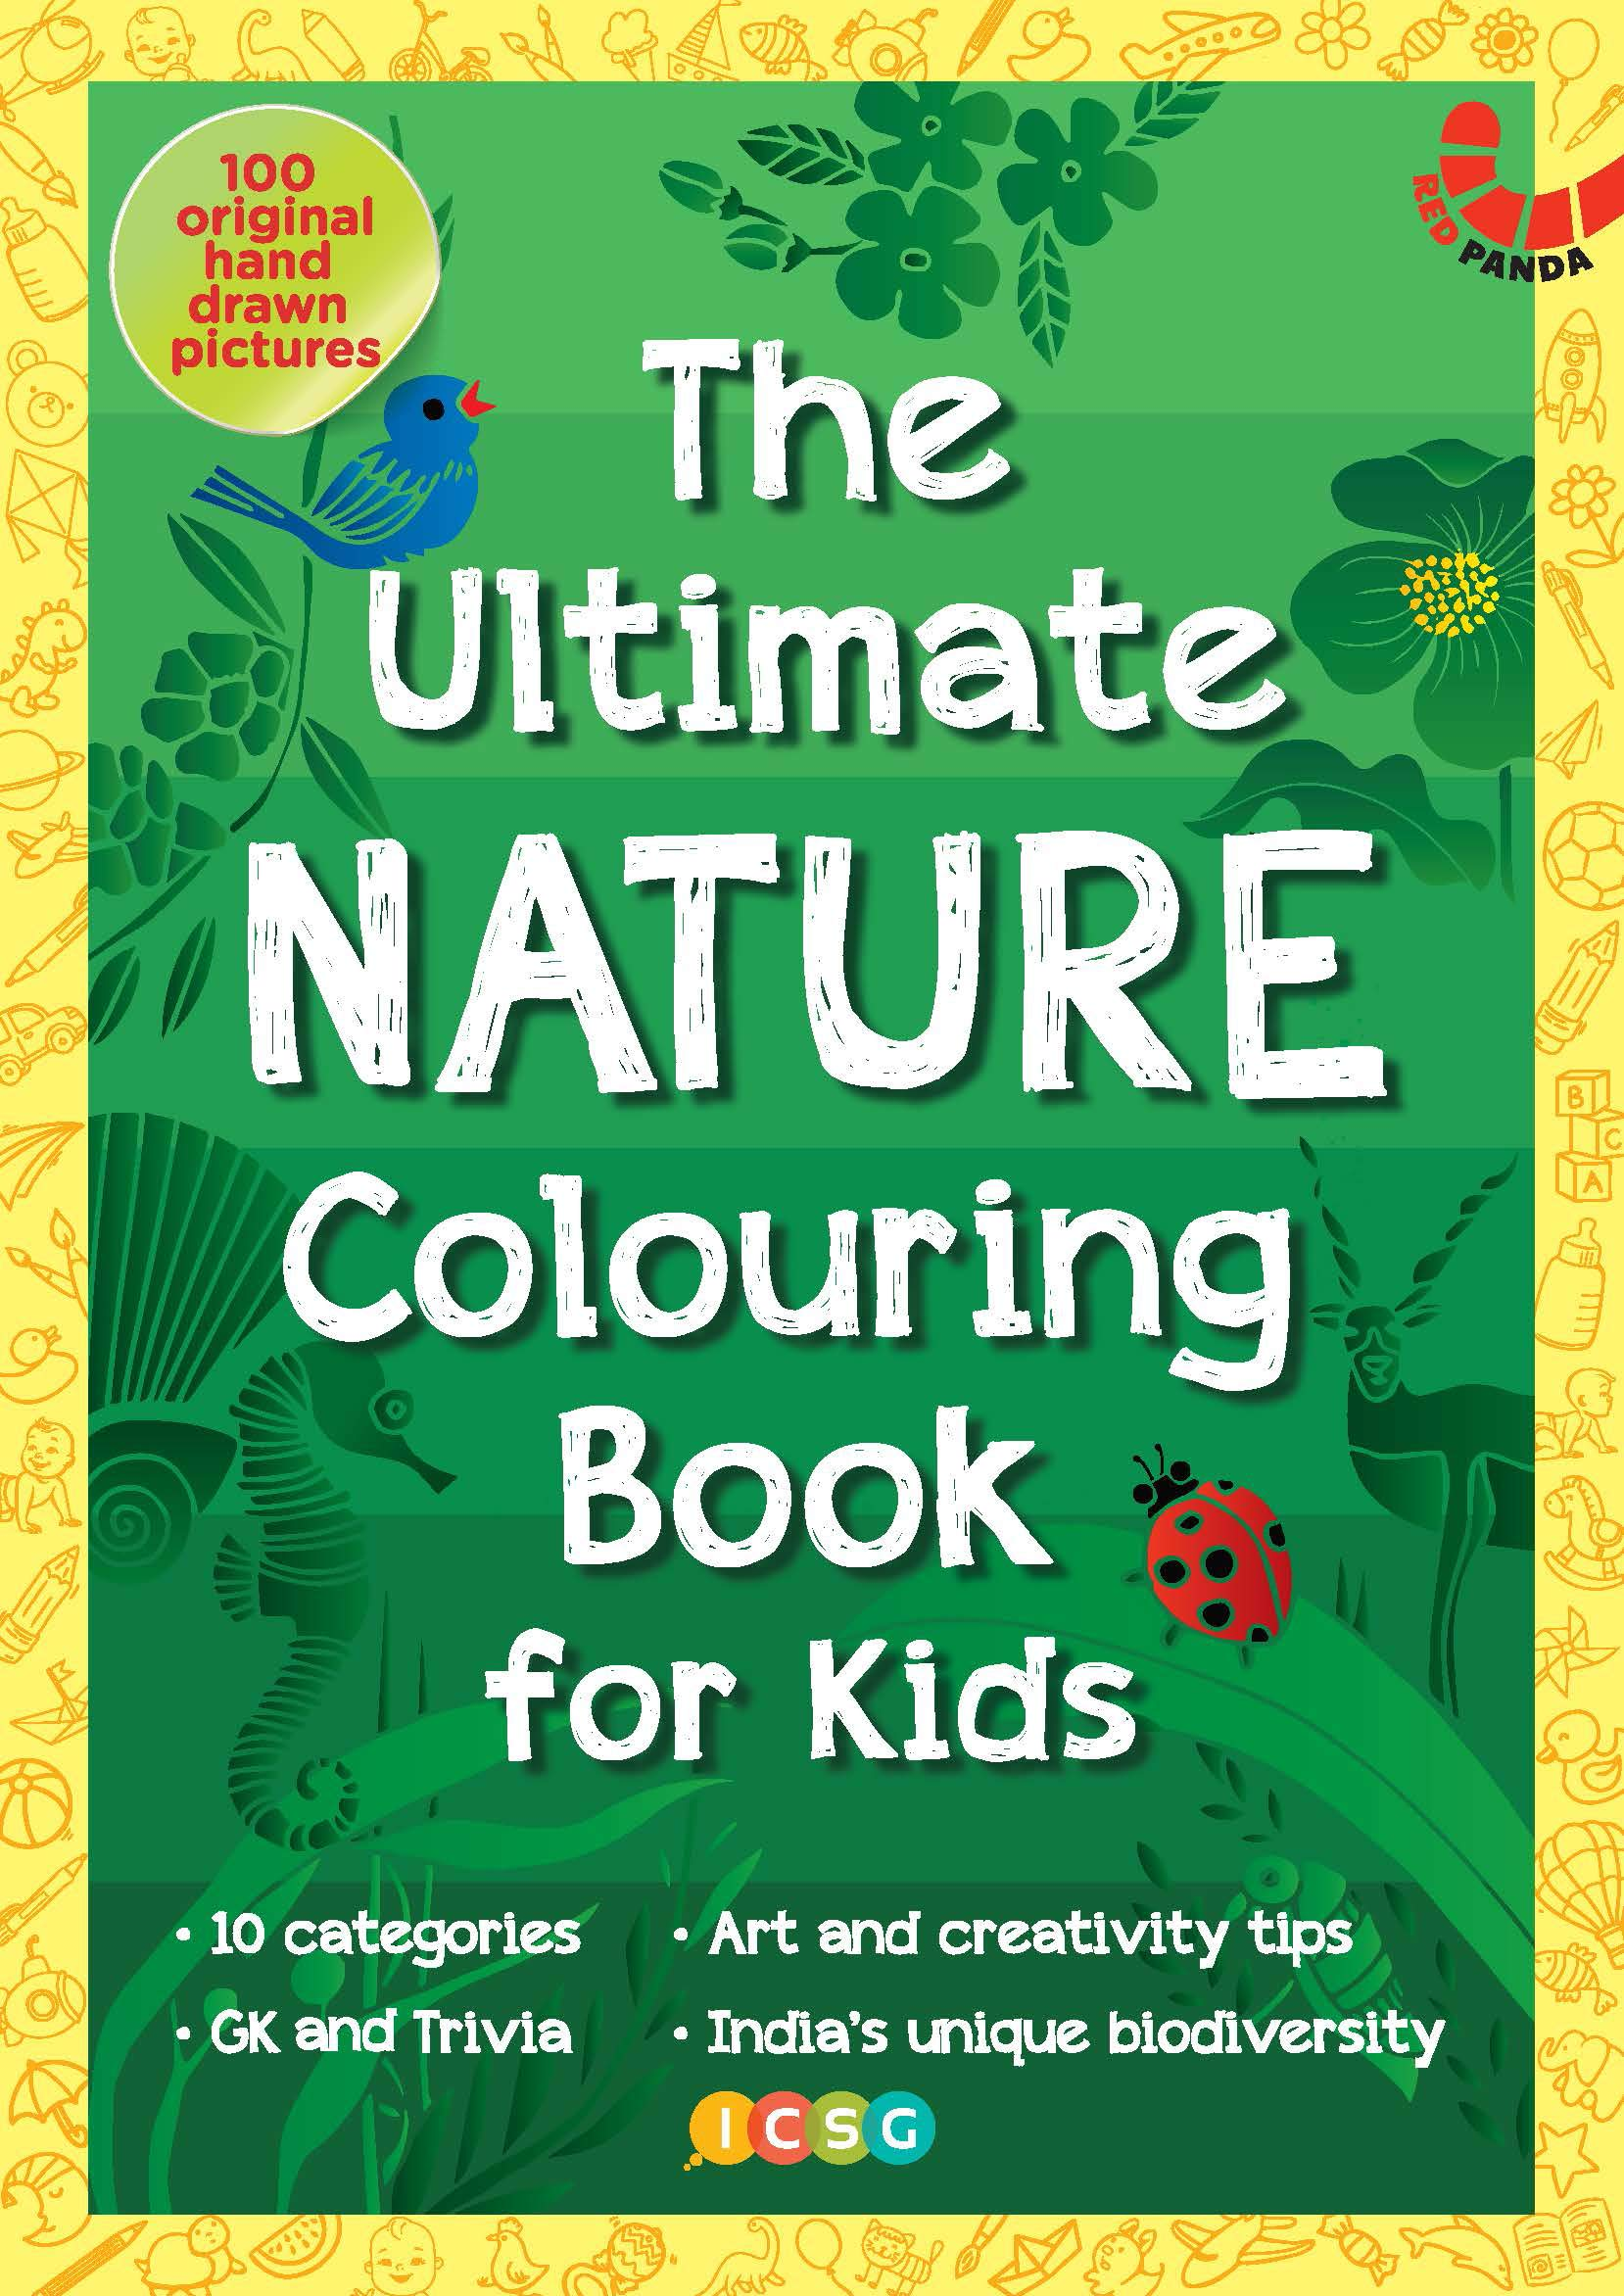 THE ULTIMATE NATURE COLOURING BOOK